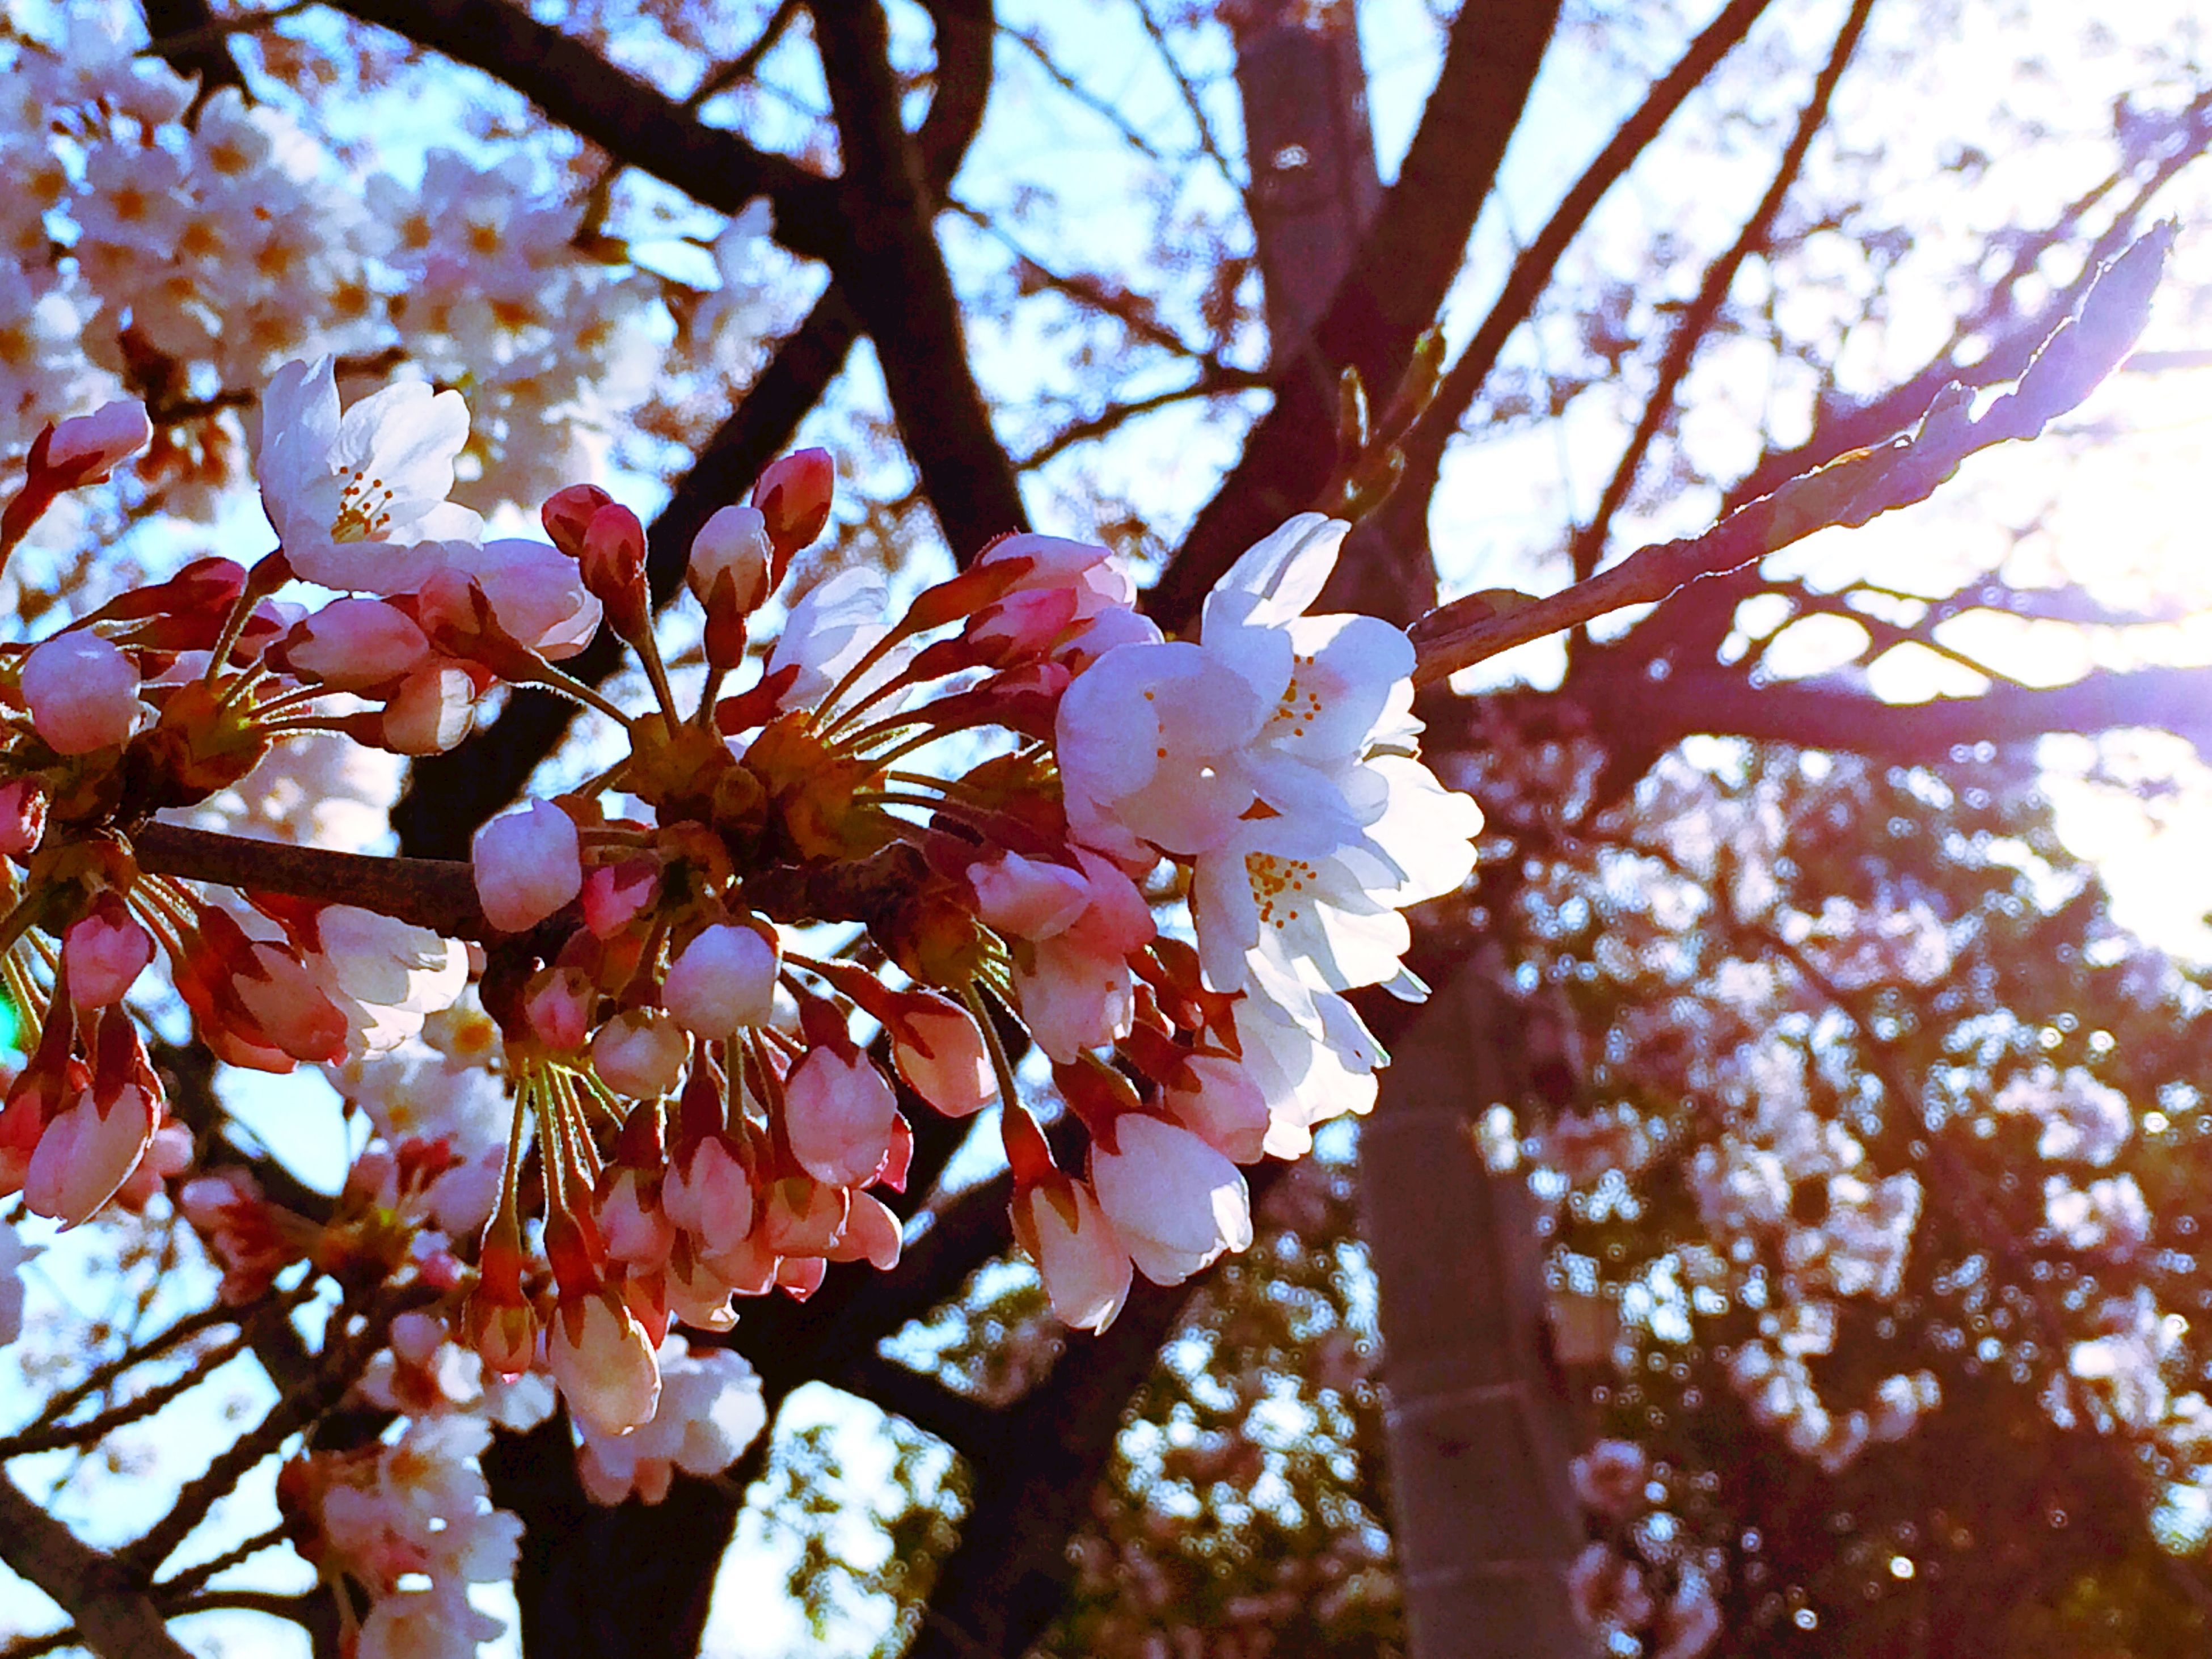 flower, freshness, branch, low angle view, tree, fragility, growth, beauty in nature, cherry blossom, blossom, nature, petal, in bloom, cherry tree, sky, springtime, blooming, close-up, focus on foreground, flower head